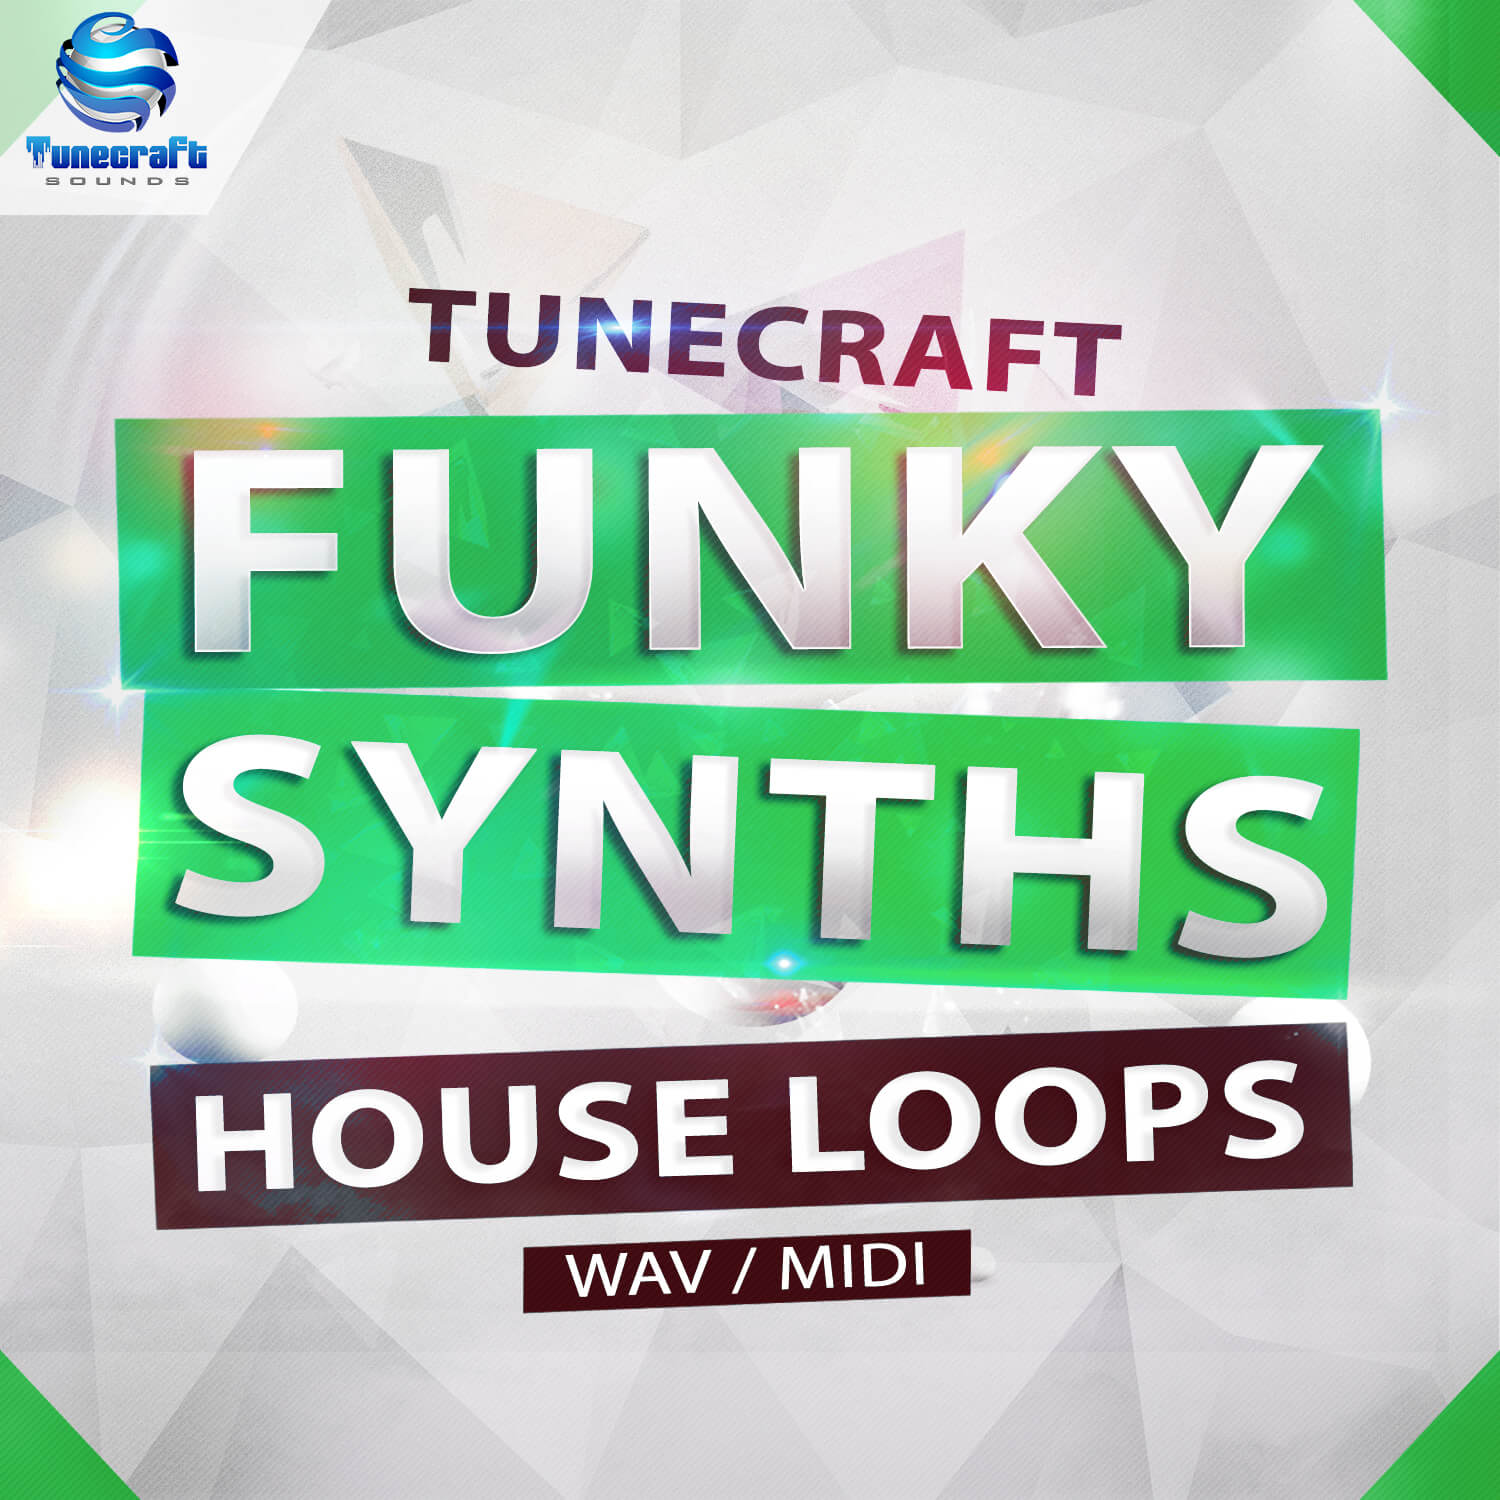 Tunecraft Funky Synths House Loops